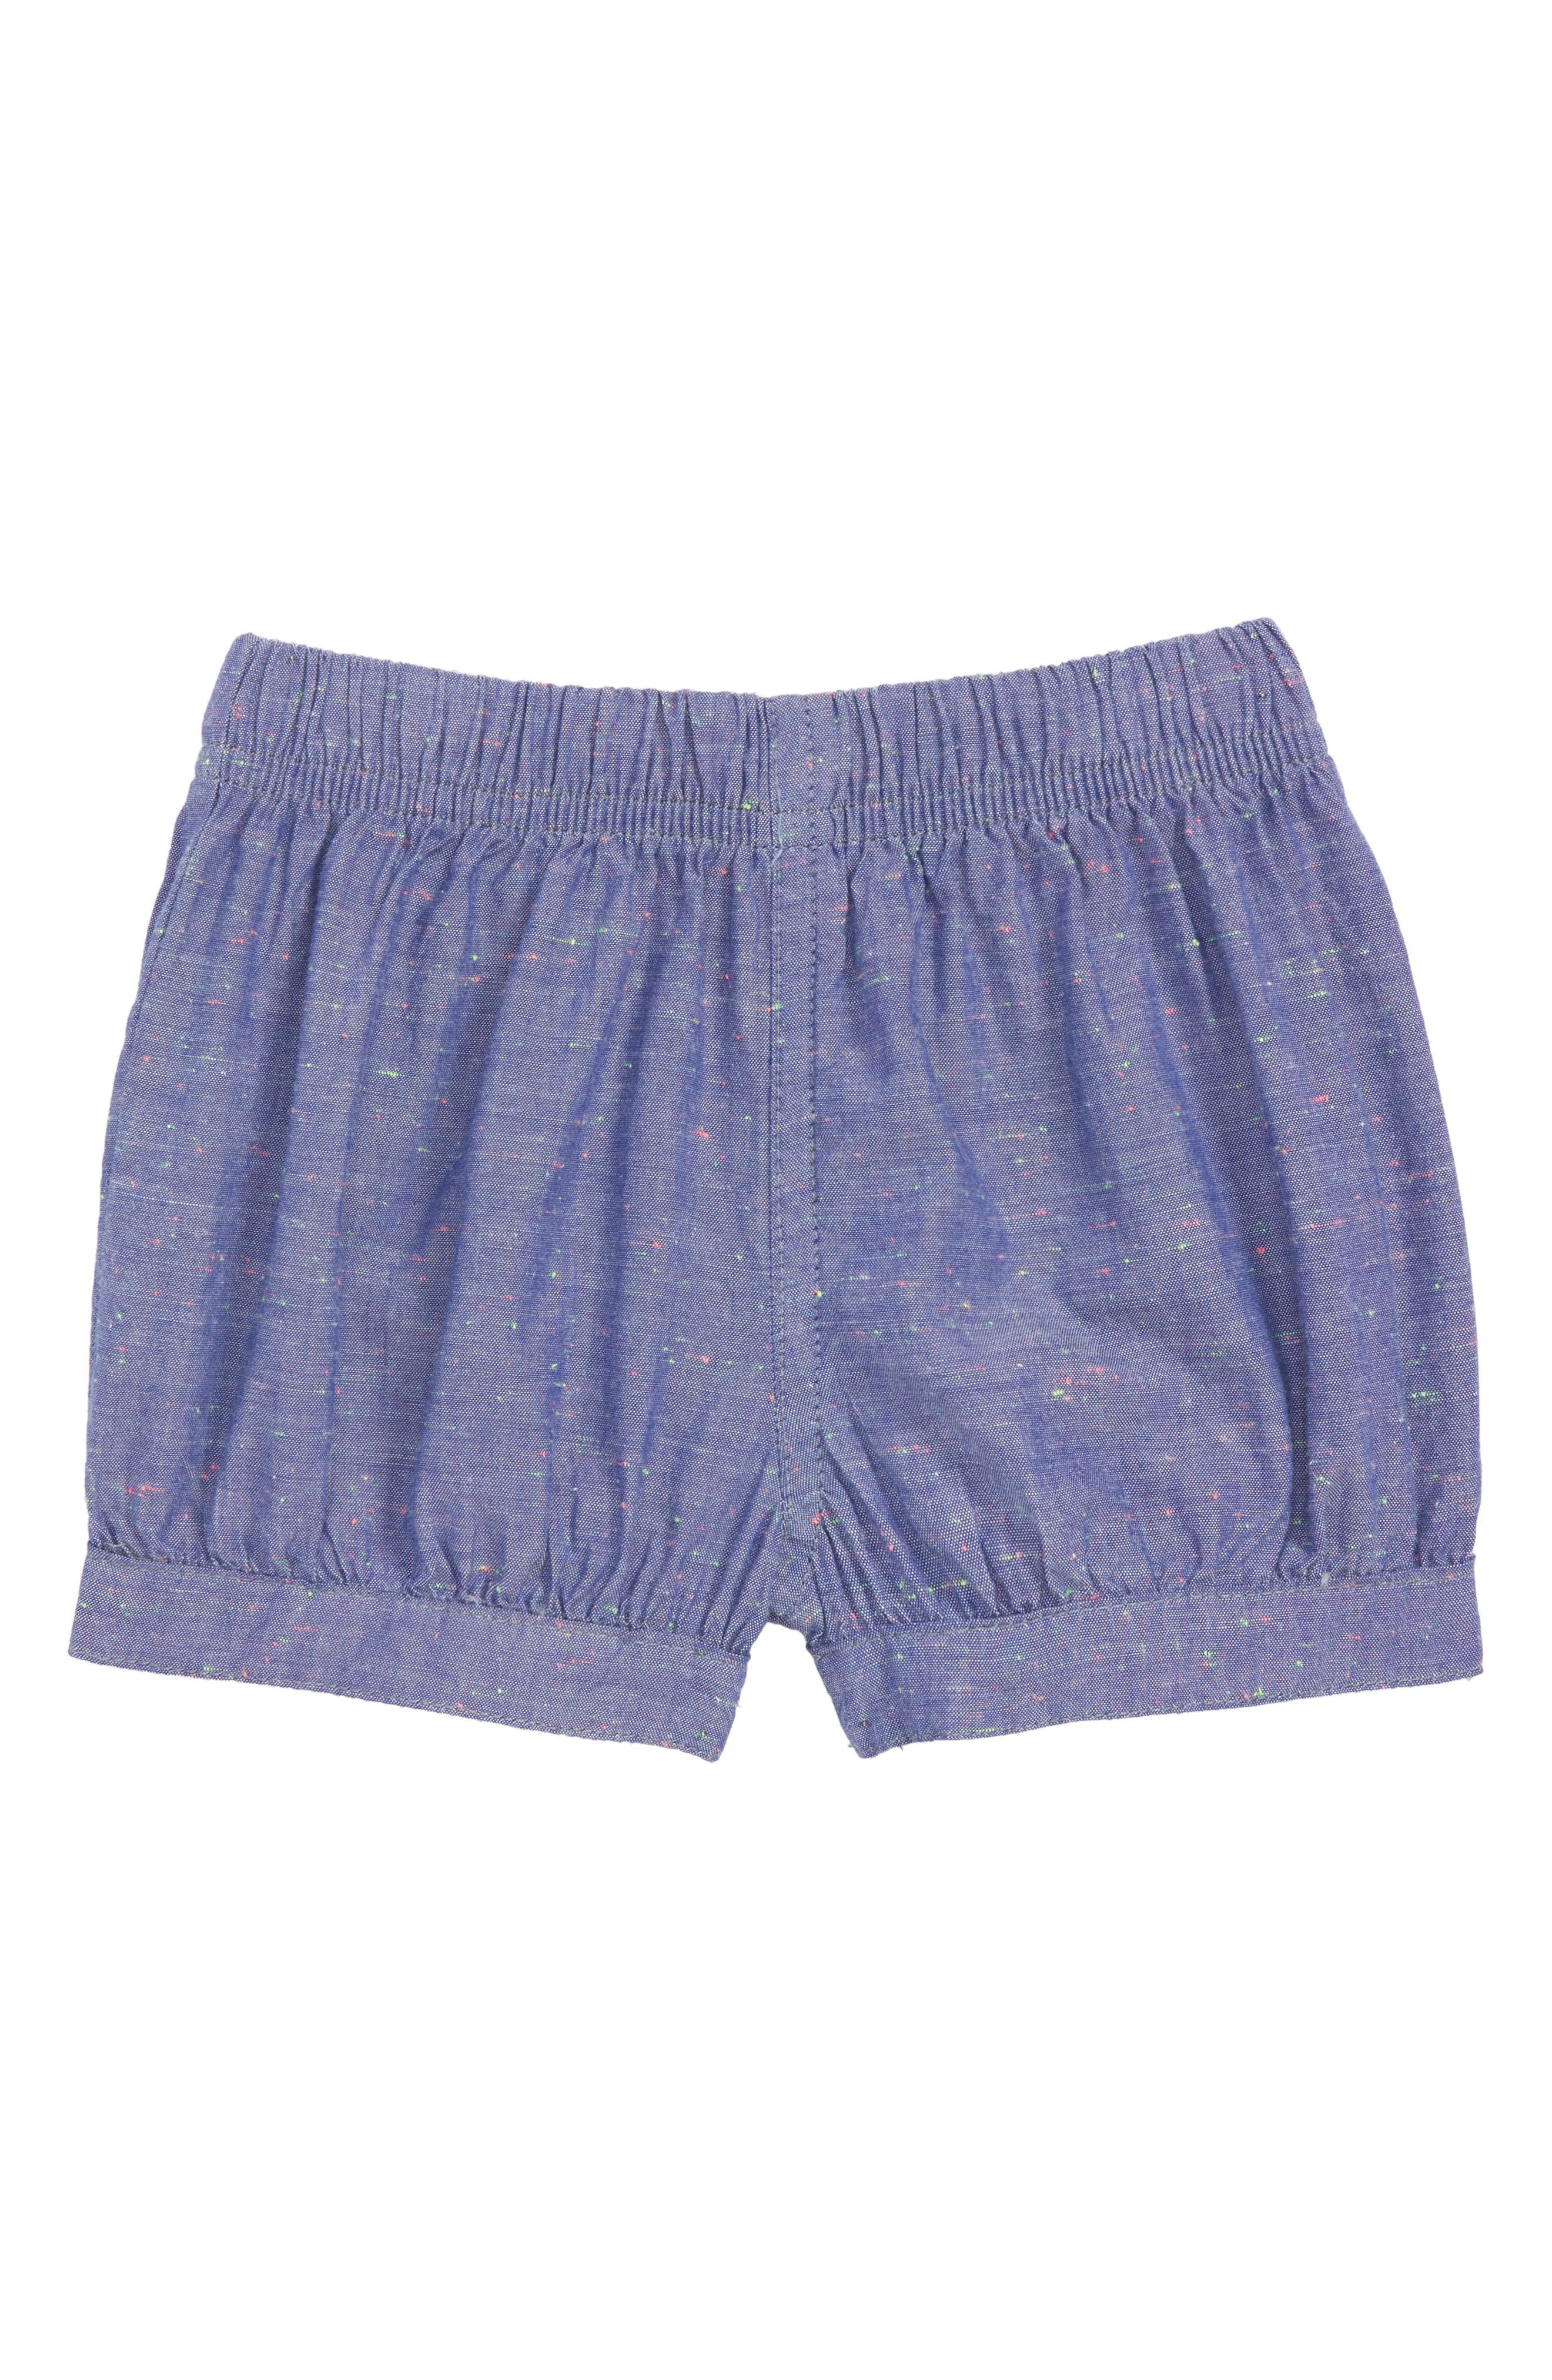 Tea Collection Chambray Bubble Shorts (Baby Girls)